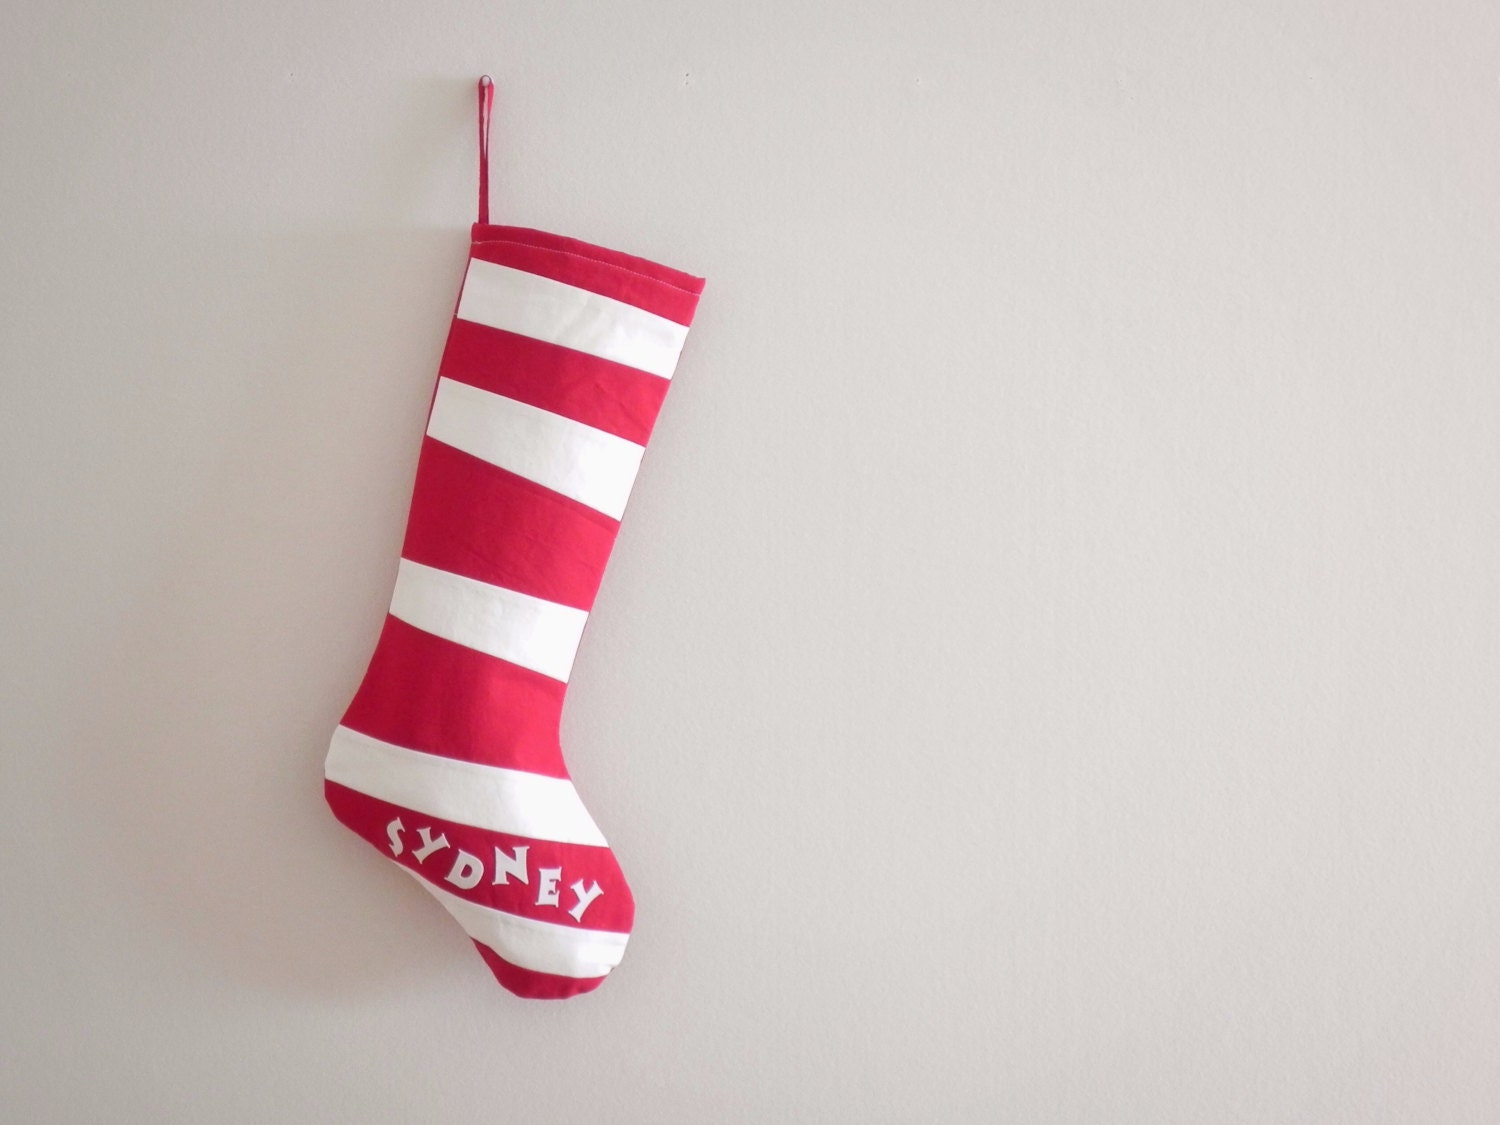 c6be589ad35 Personalized Christmas Stocking Personalized Stocking